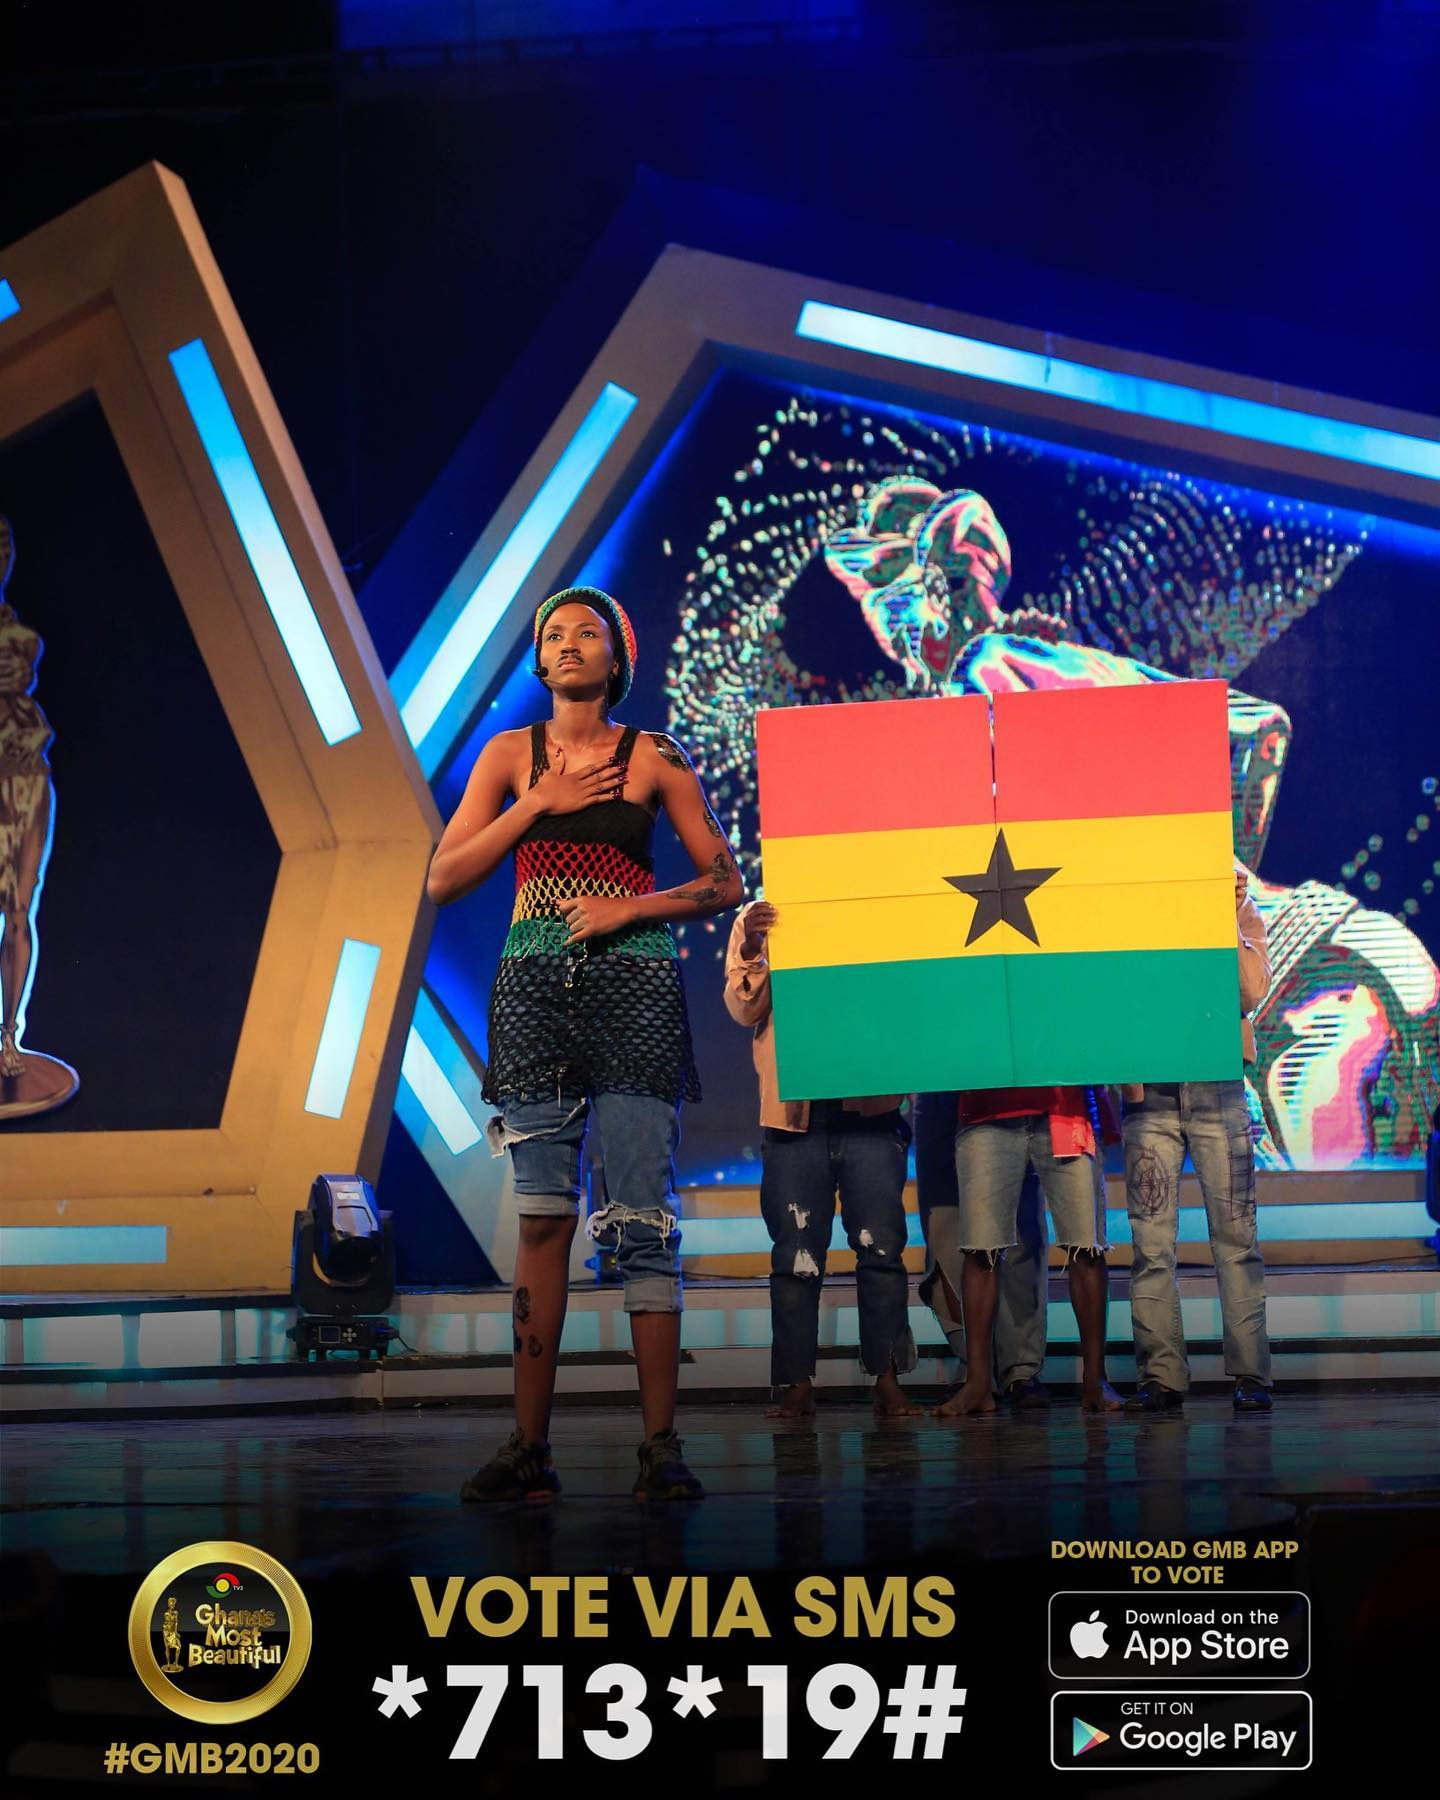 GMB 2020 Final: Contestants preach peace ahead of elections